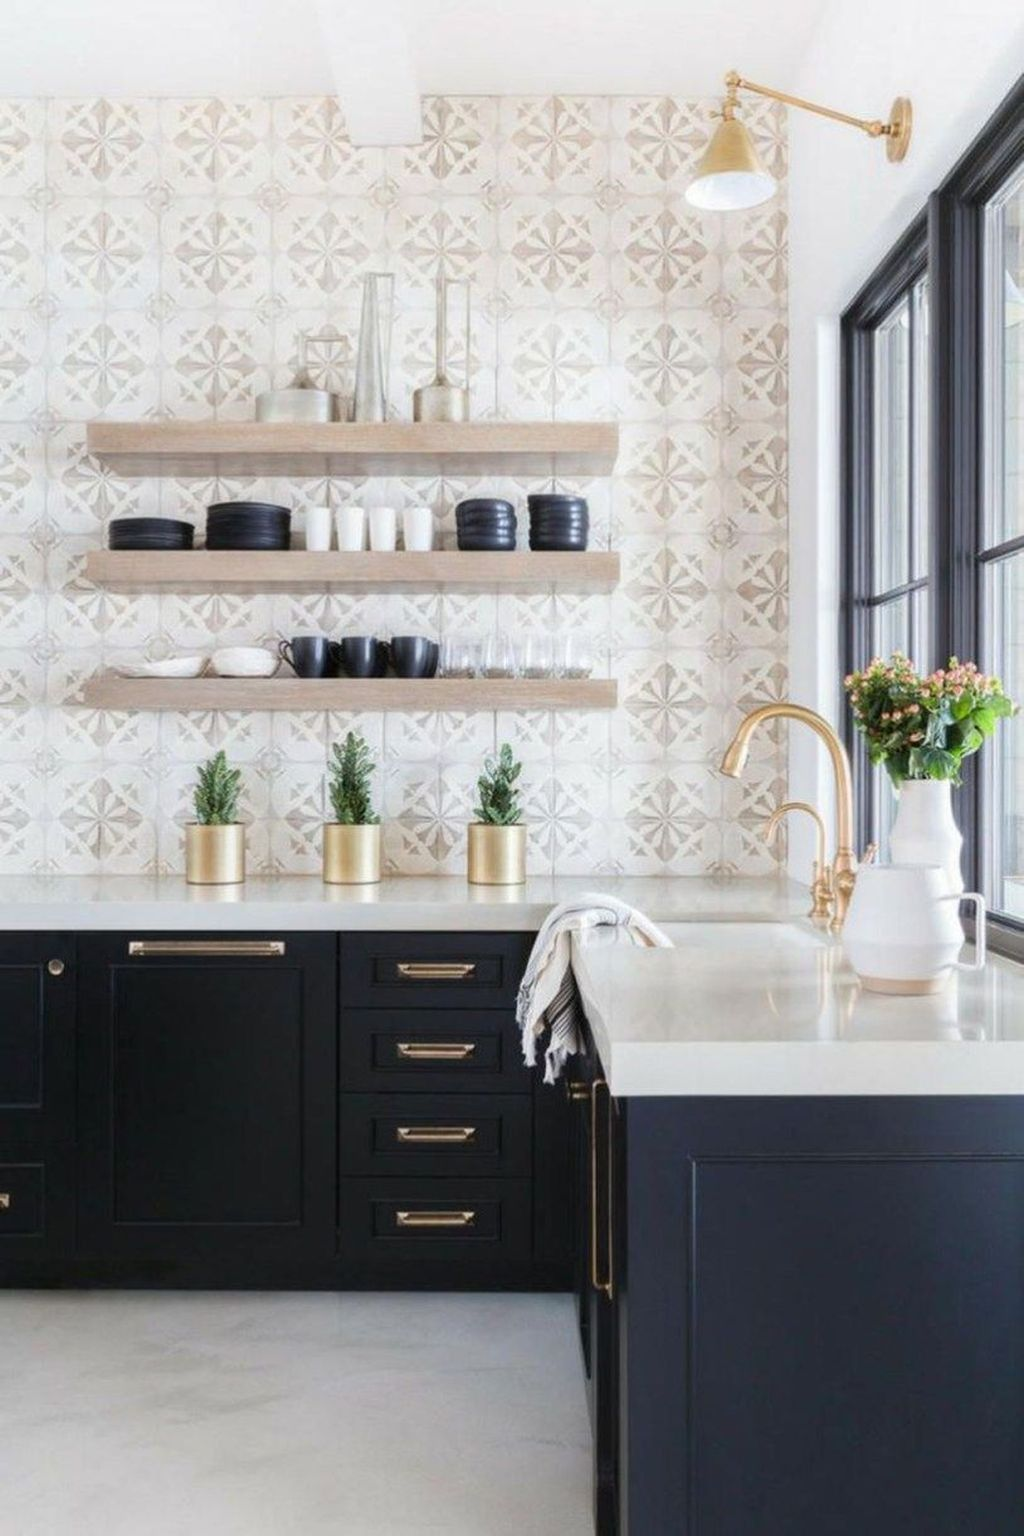 17 Beautiful Kitchen Backsplash Ideas To Welcome 2020 Kitchen Backsplash Designs Farmhouse Kitchen Backsplash Accent Wall In Kitchen